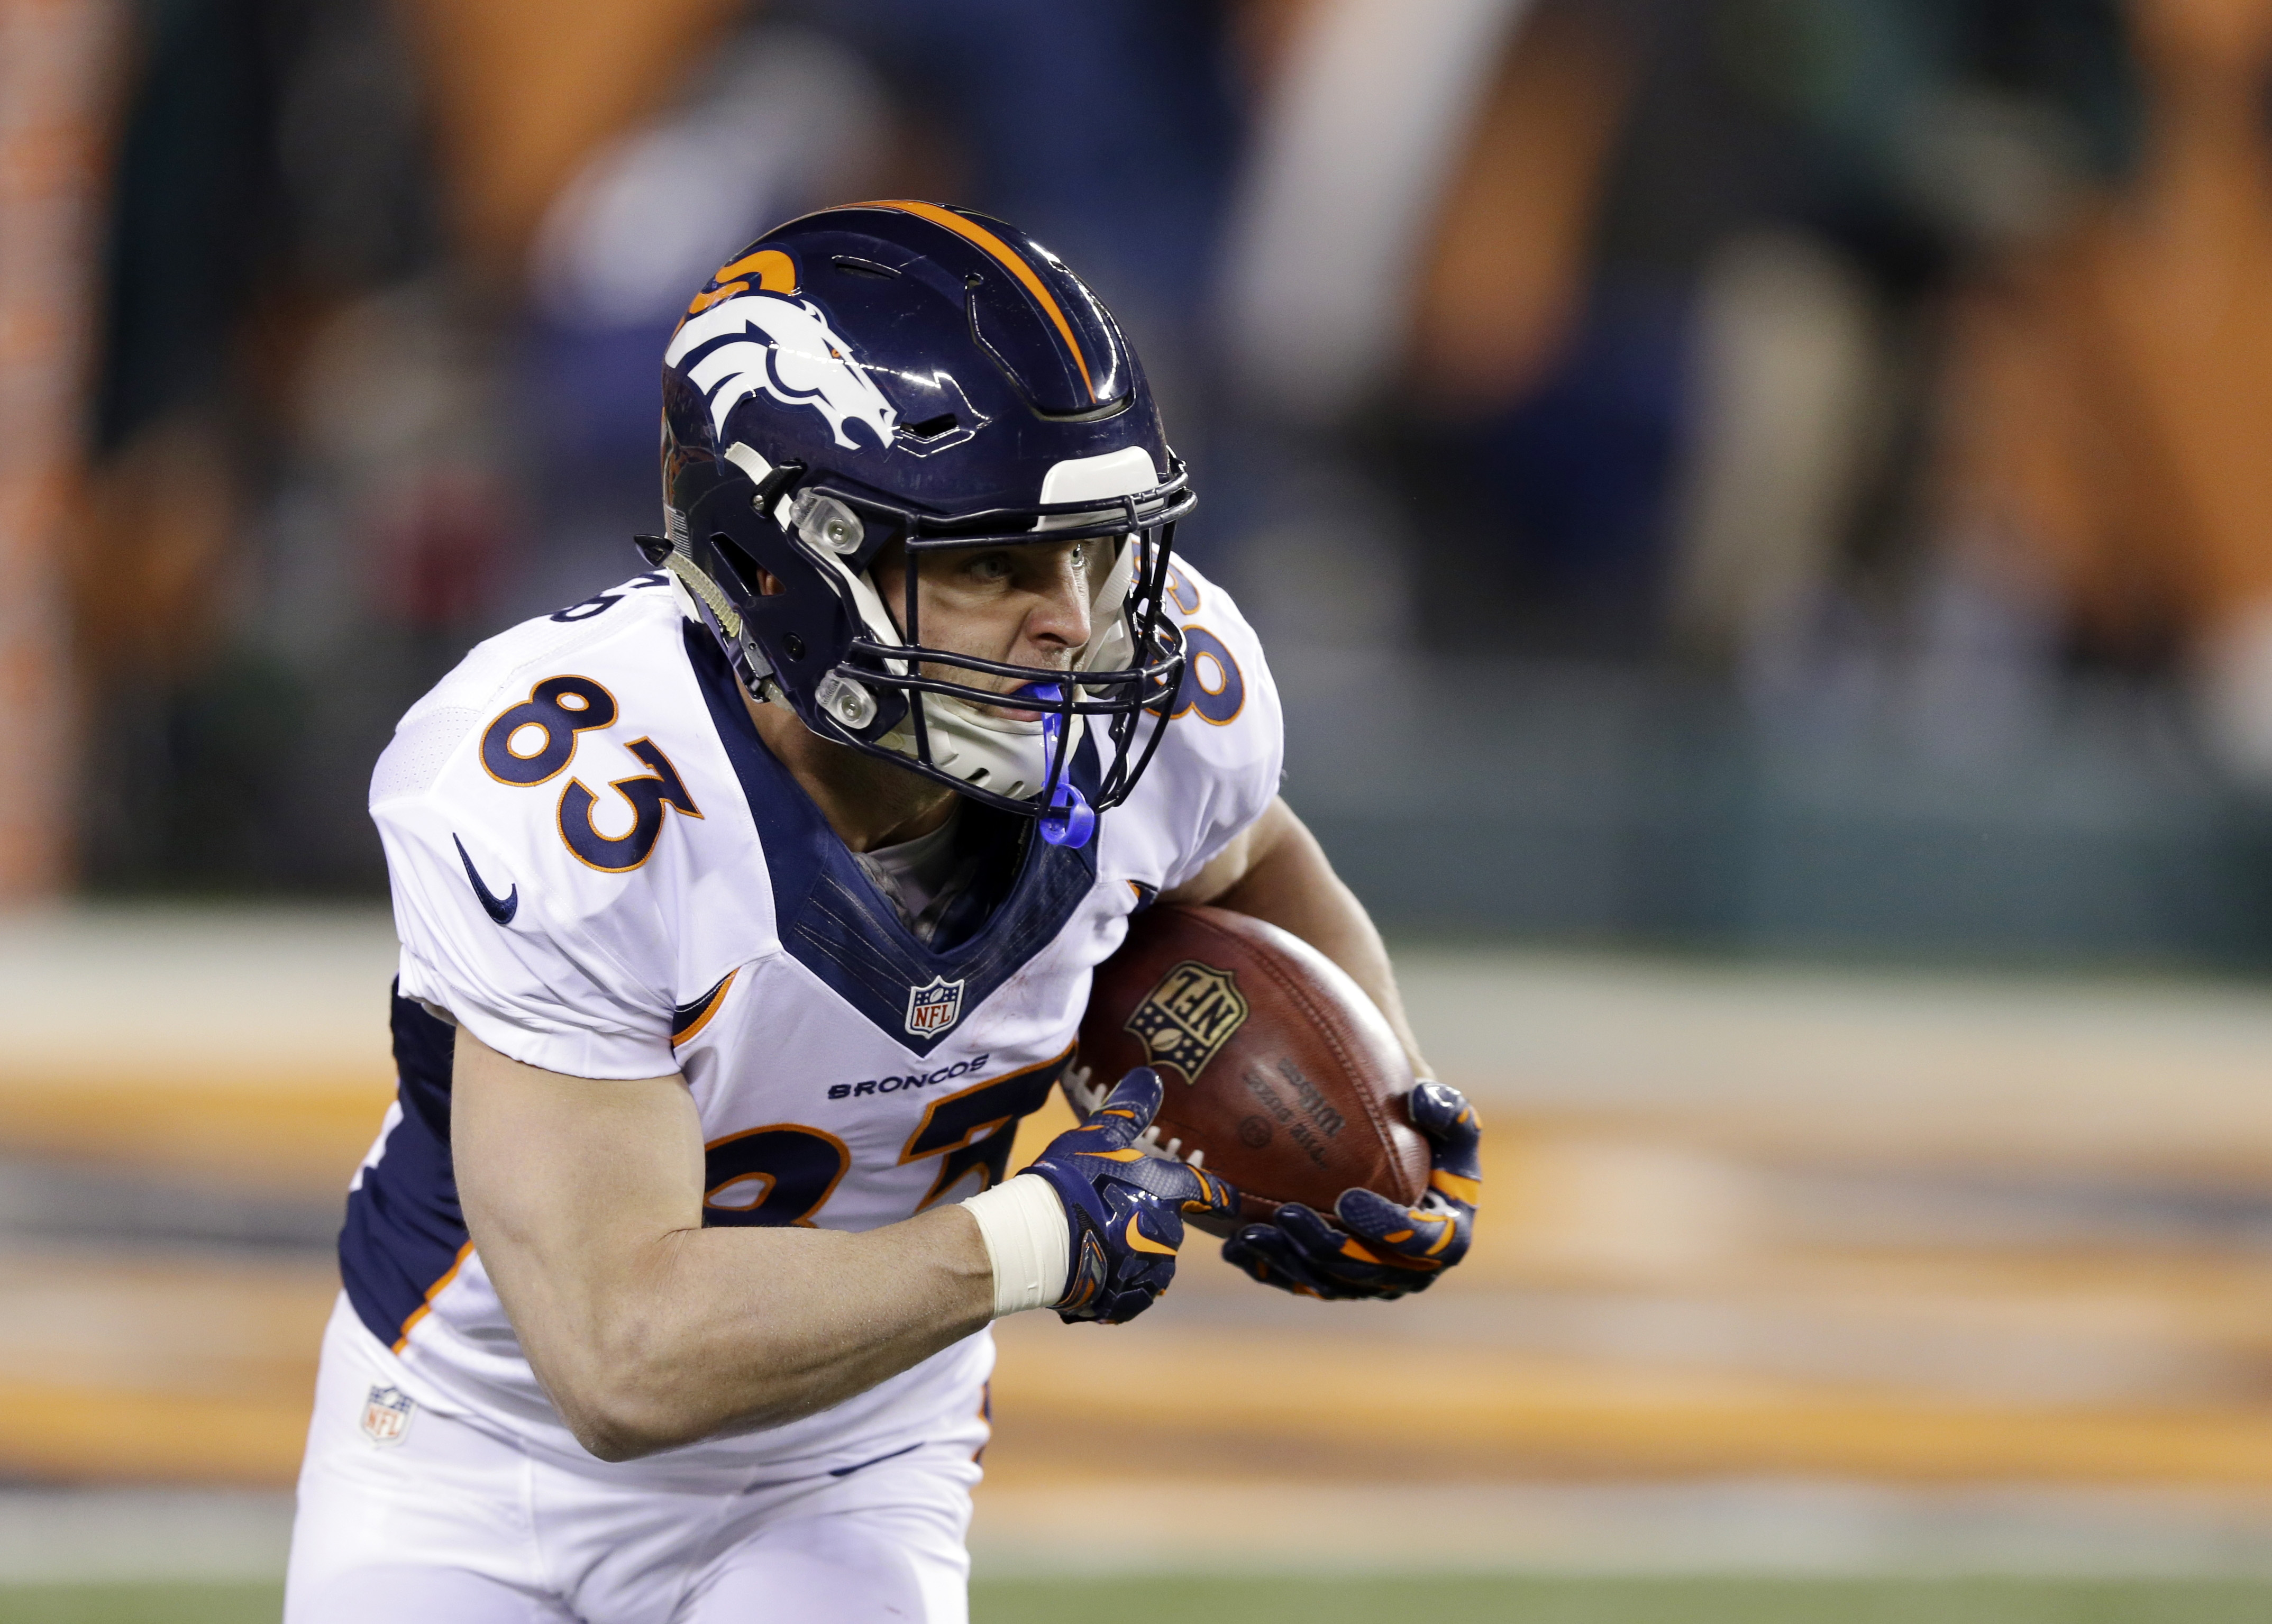 Denver Broncos wide receiver Wes Welker runs with a catch against the Cincinnati Bengals during the first half of an NFL football game Monday, Dec. 22, 2014, in Cincinnati. (AP Photo/Michael Conroy)